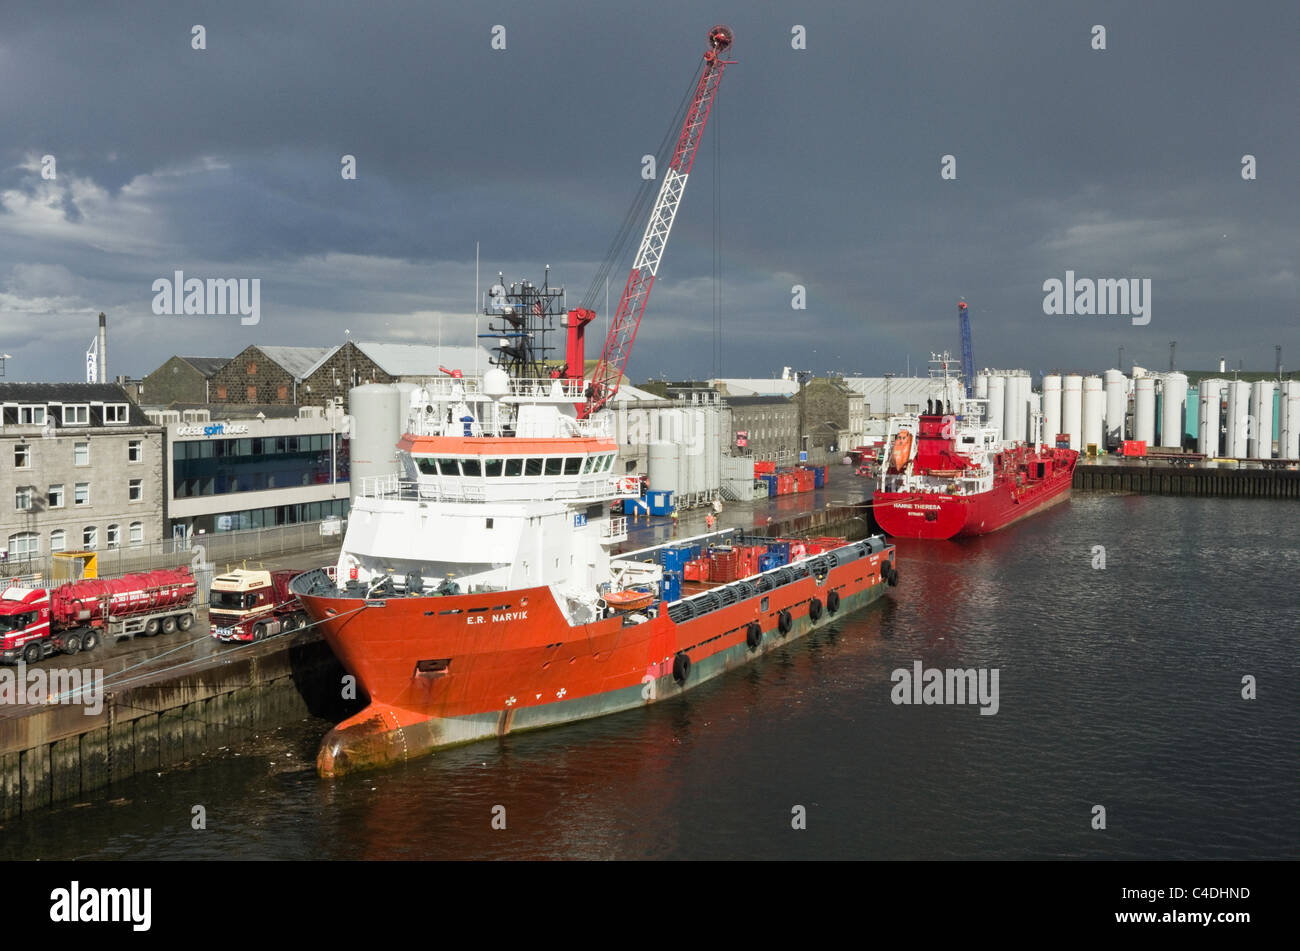 North sea offshore oil supply ships docked by the quay in the port of Aberdeen, Aberdeenshire, Scotland, UK, Britain. - Stock Image